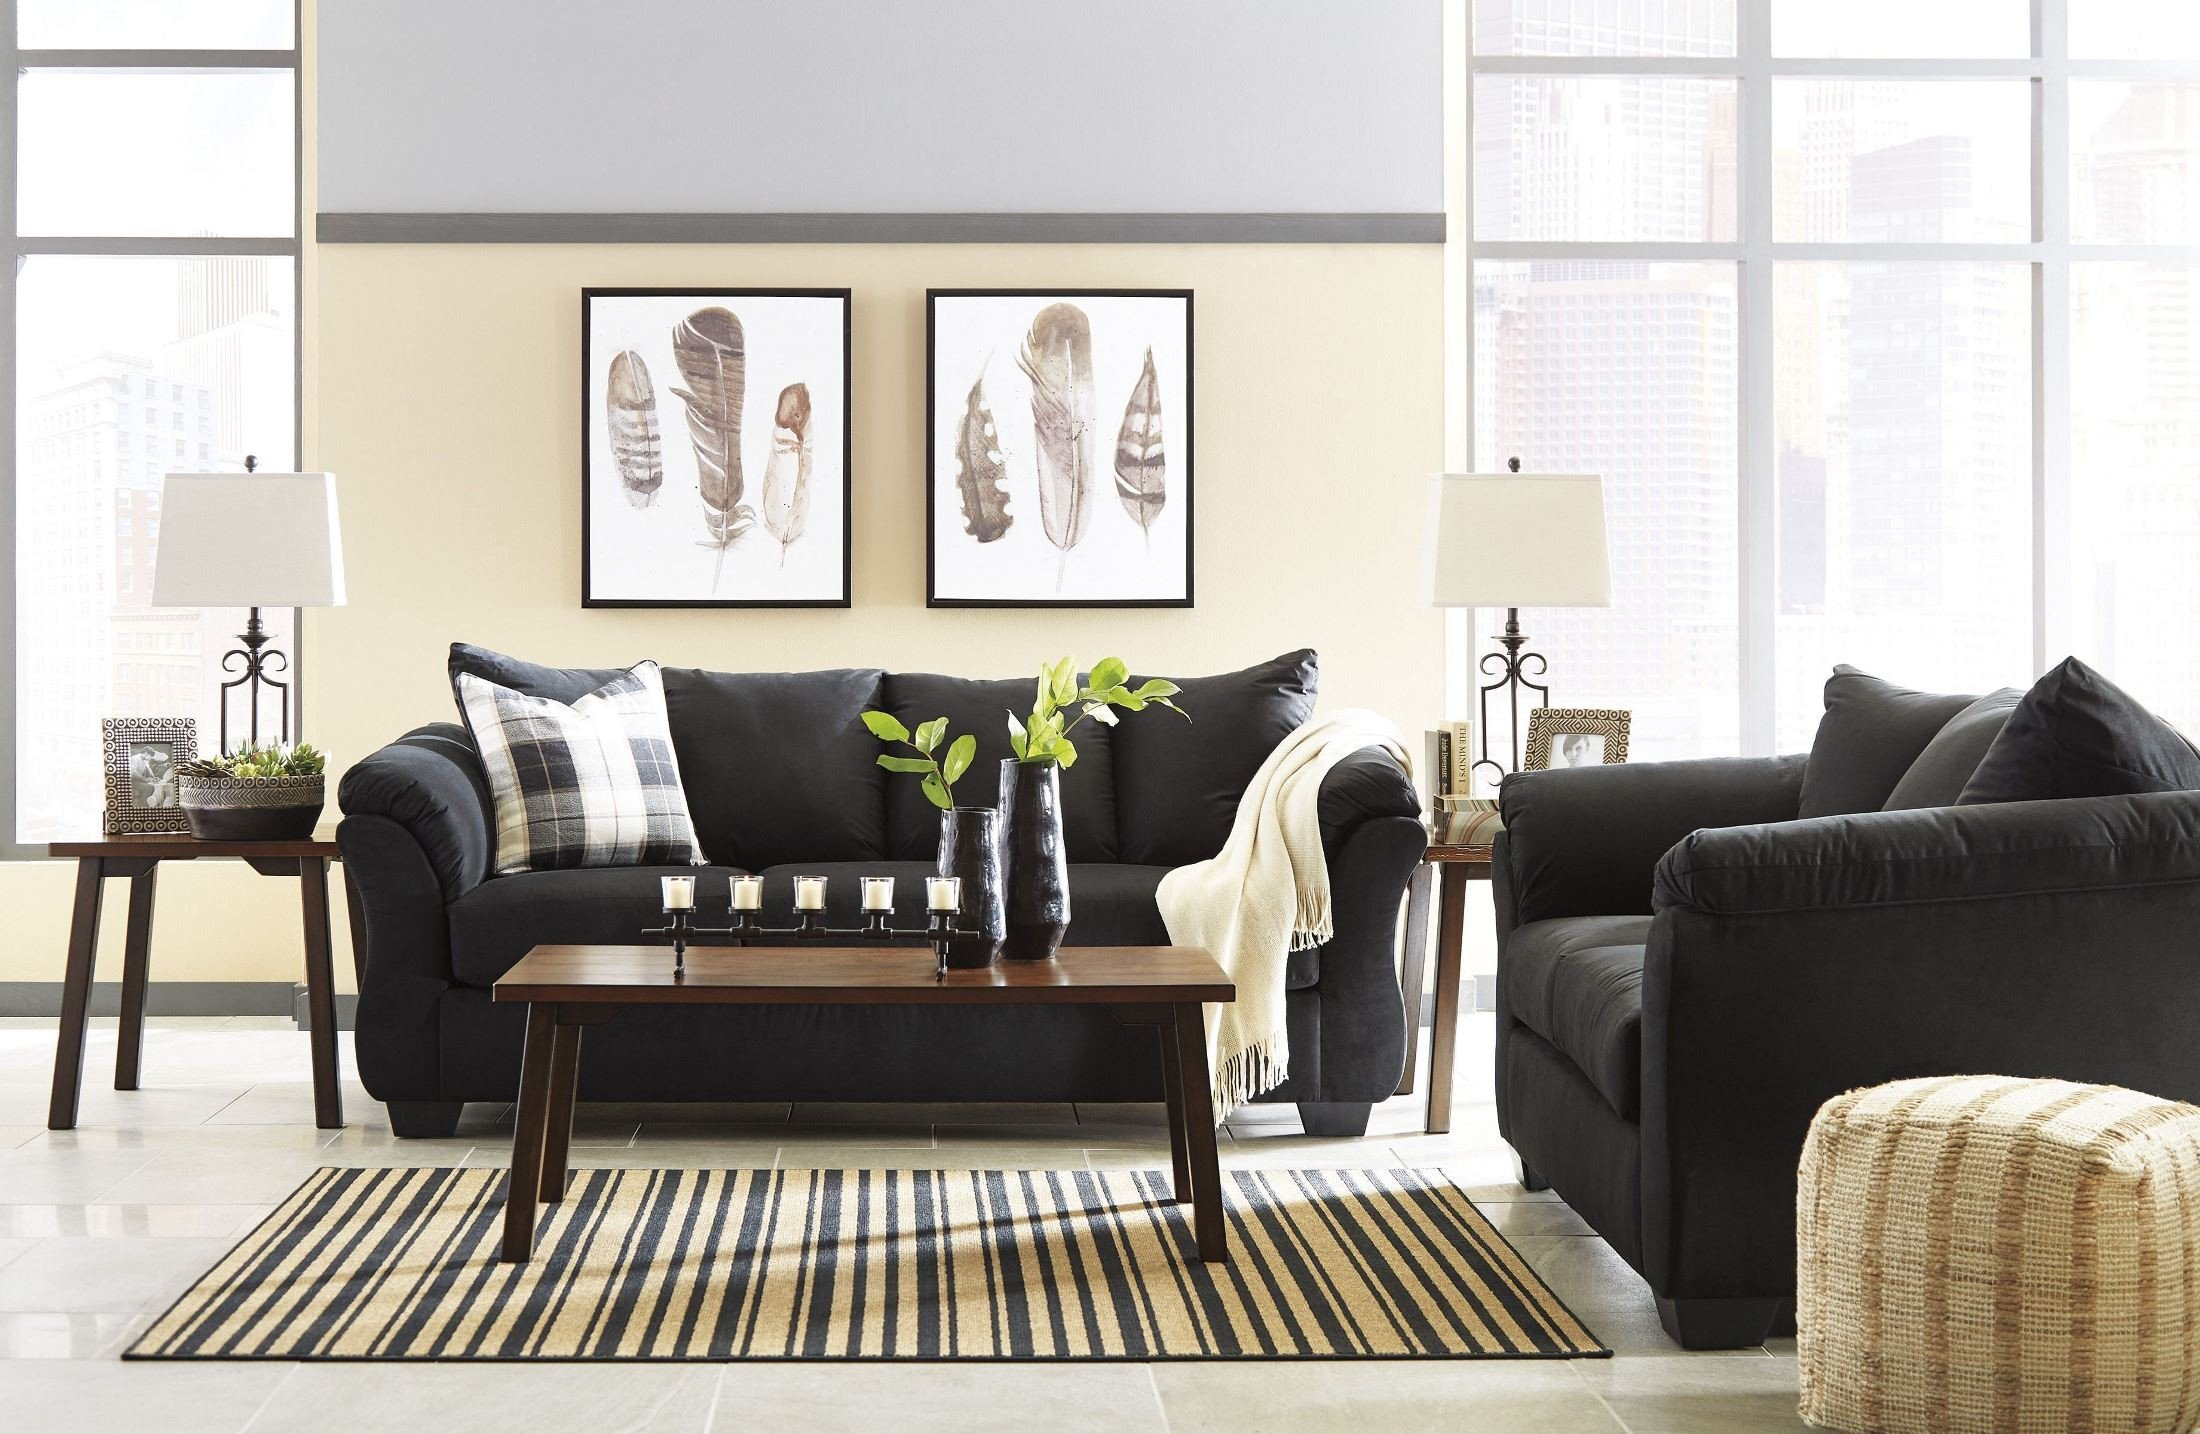 Signature design by ashley darcy black living room set - Ashley furniture living room sets 999 ...